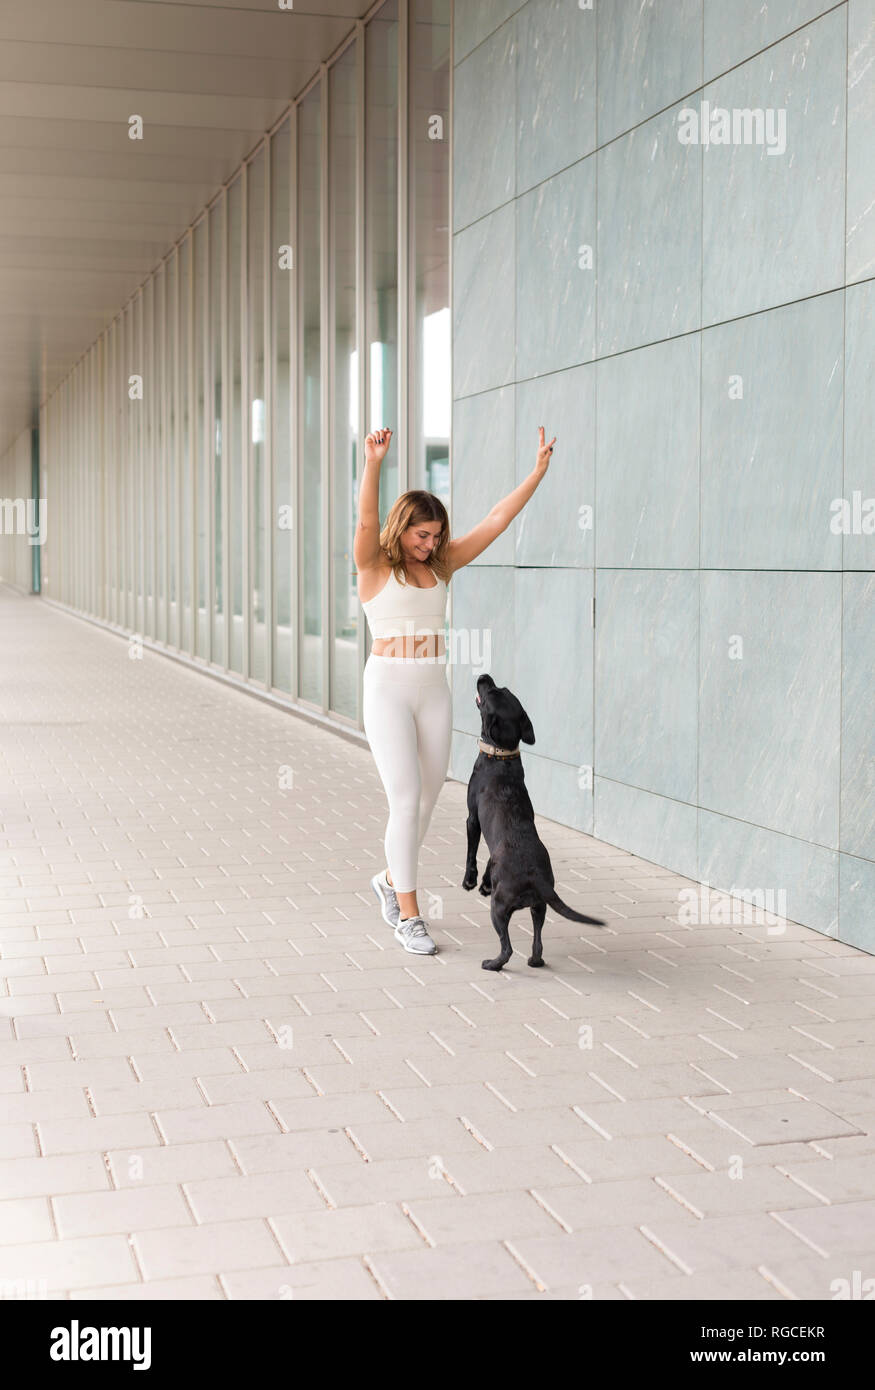 Smiling young woman dressed in white sportswear playing with her dog Stock Photo